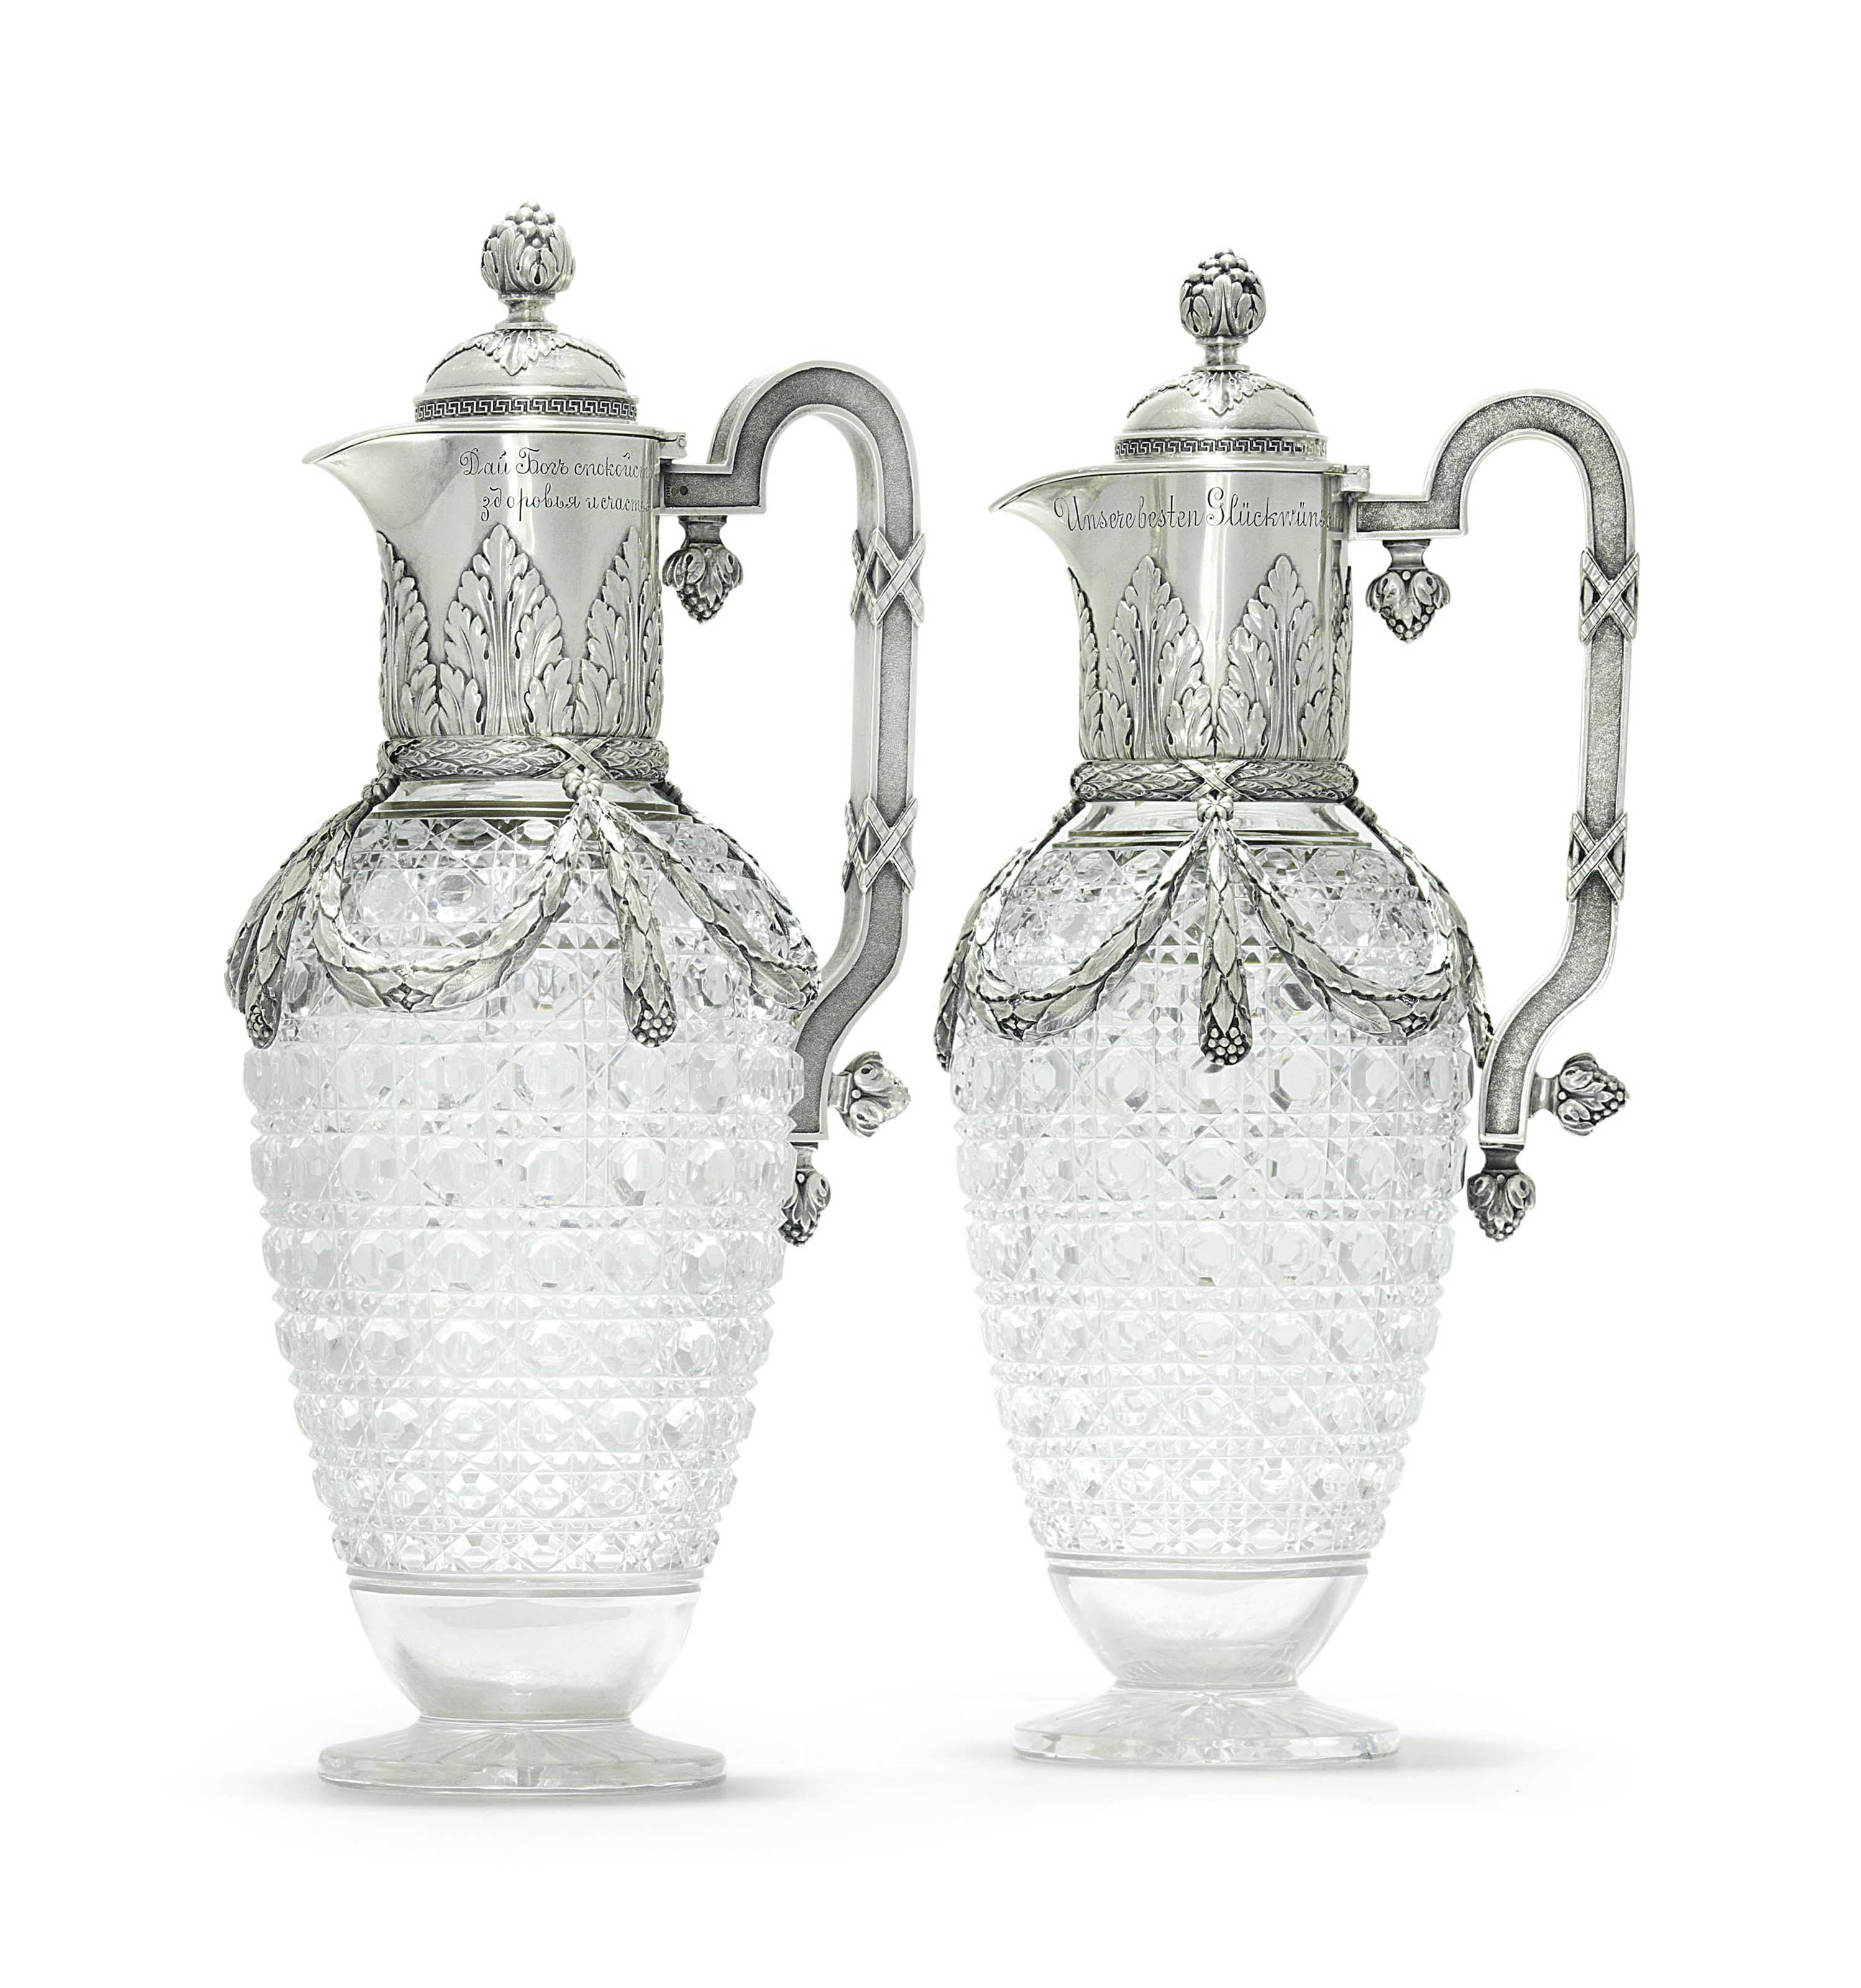 A PAIR OF SILVER-MOUNTED CUT-GLASS DECANTERS